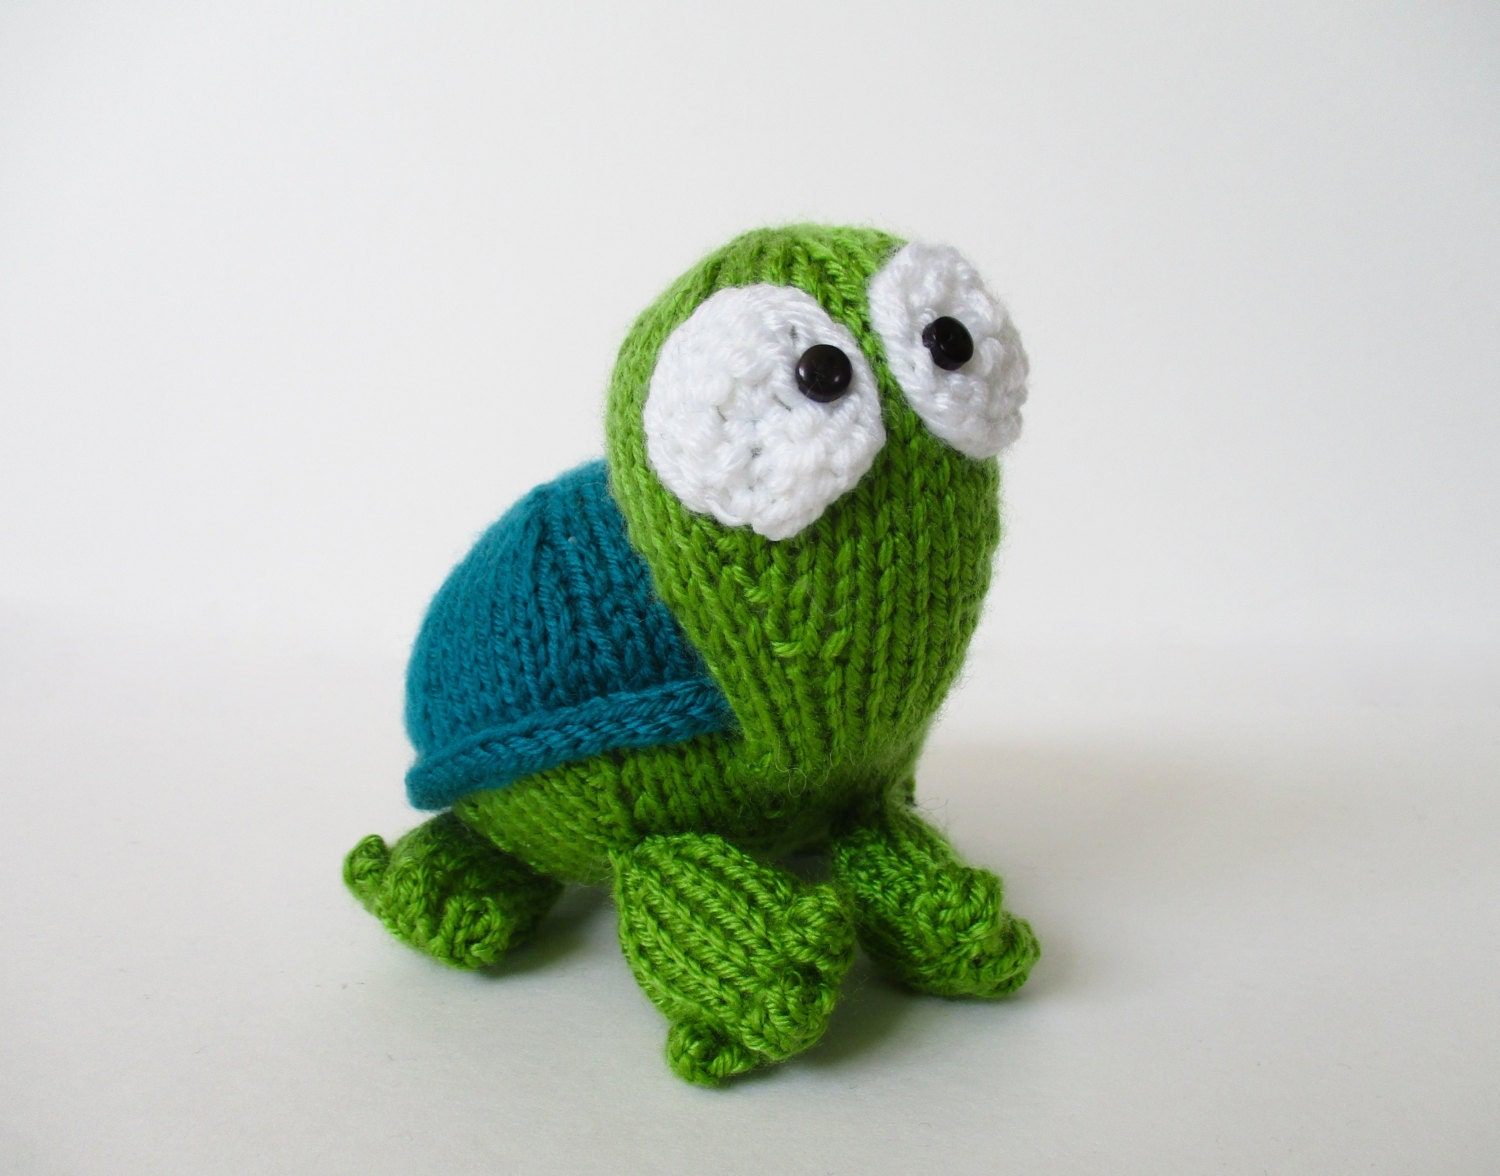 Tortoise Clothes Knitting Pattern : Spencer the tortoise toy knitting pattern